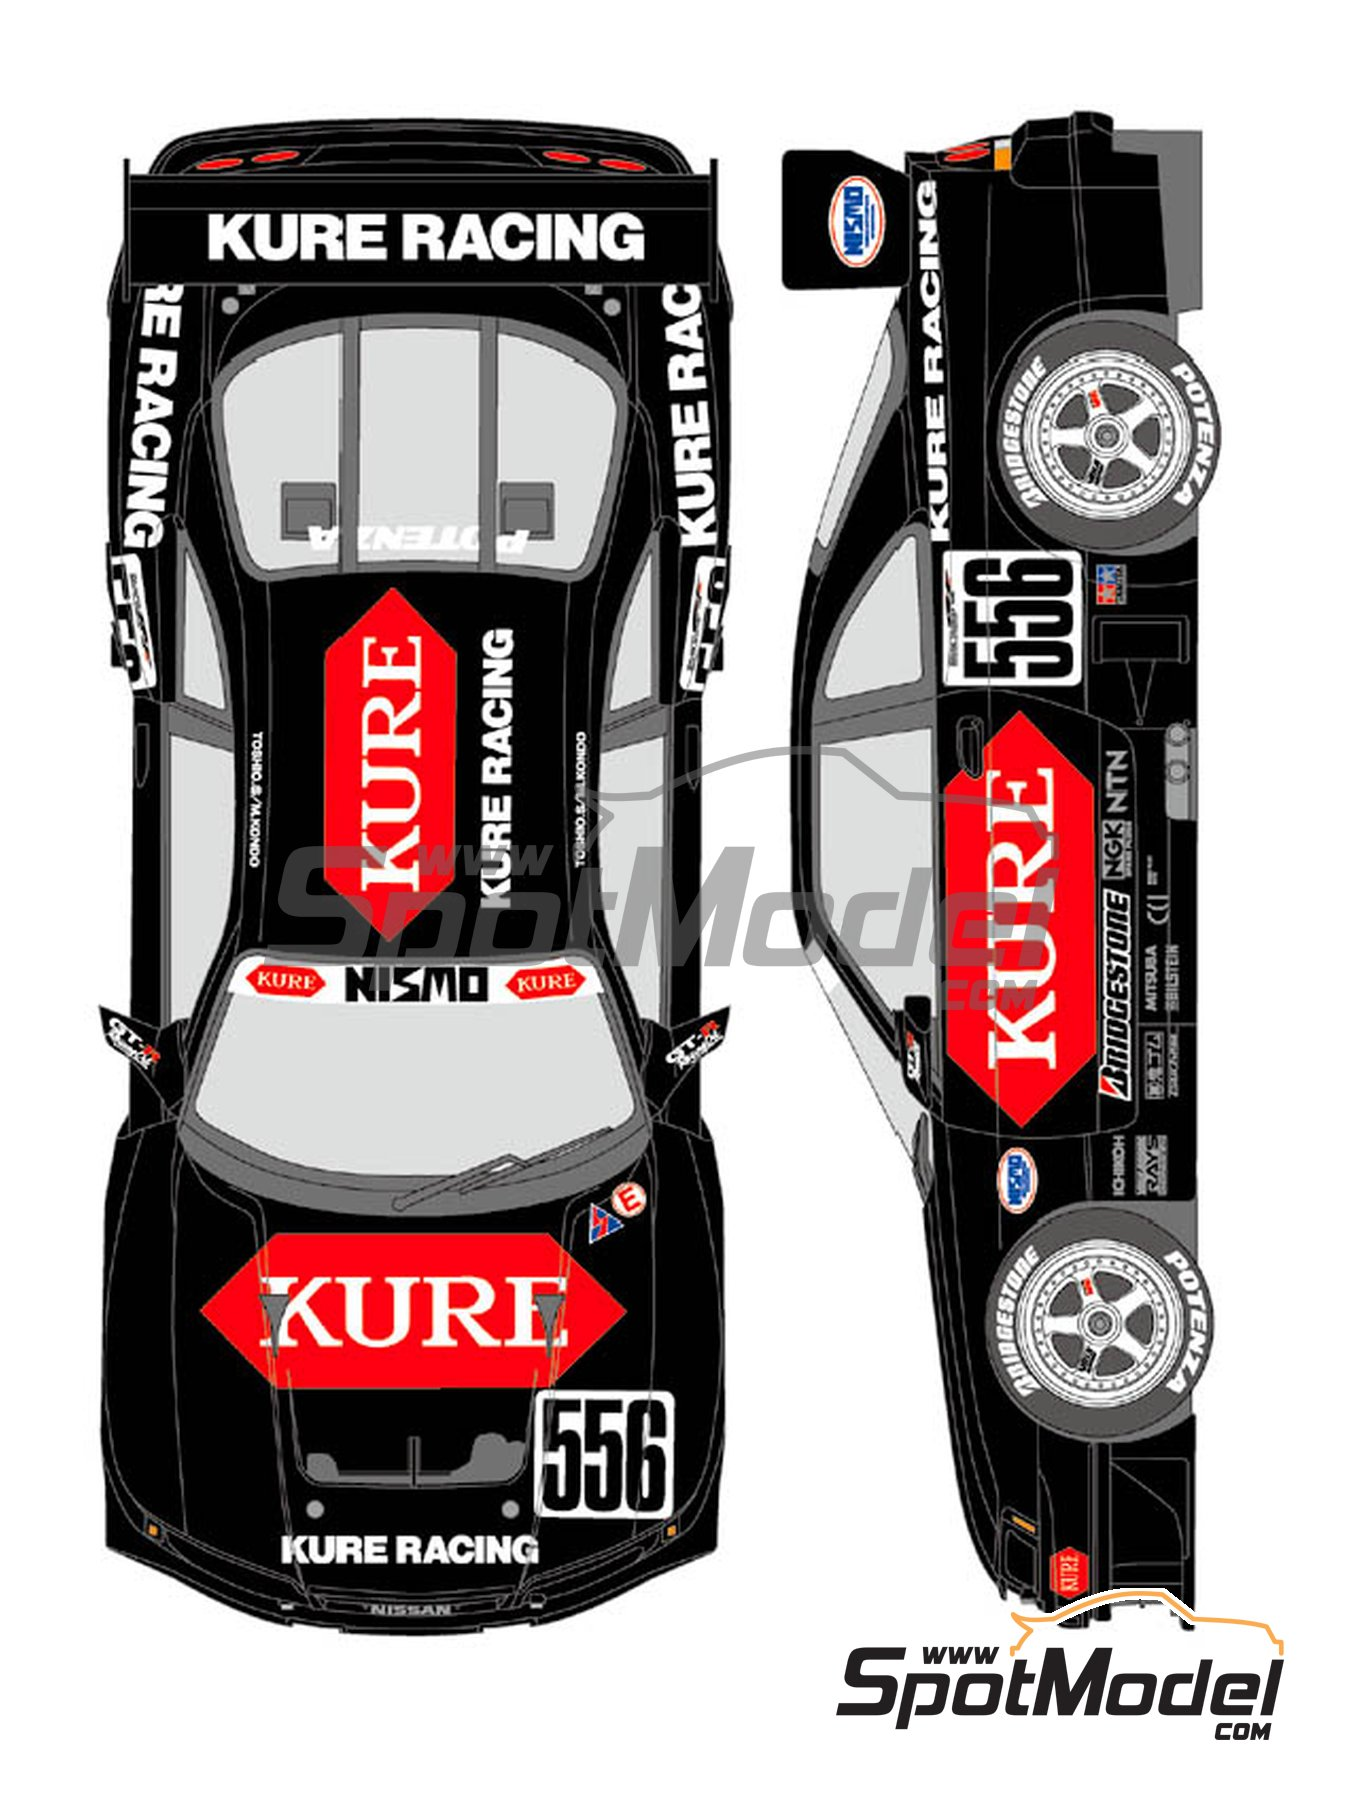 Nissan Nismo GT-R Kure Racing - Japanese Grand Touring Car Championship (JGTC) 1996 | Marking / livery in 1/24 scale manufactured by Shunko Models (ref.SHK-D359) image